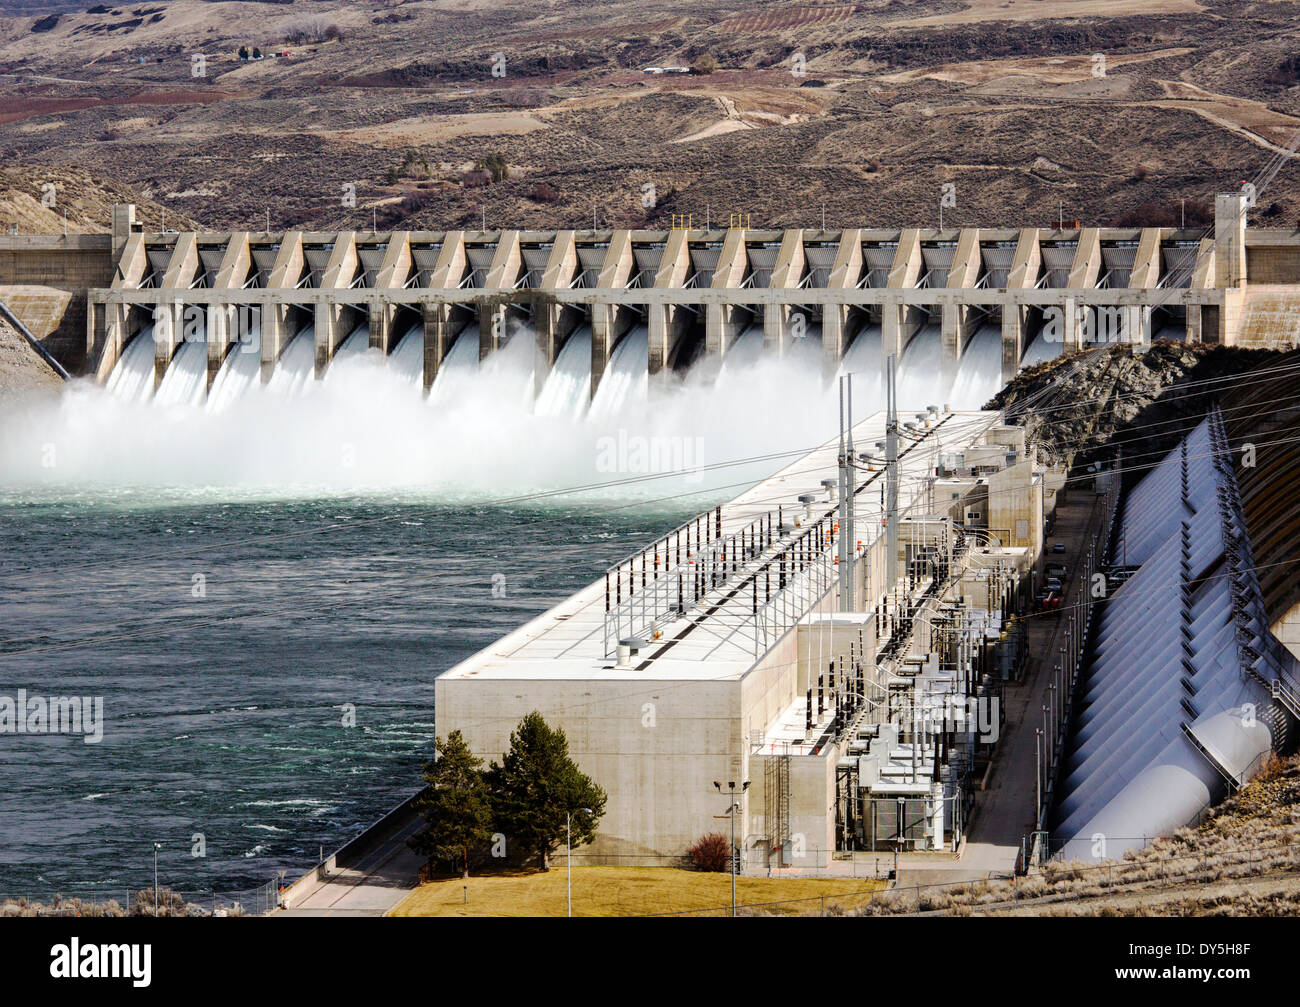 hydroelectric power station dam stockfotos hydroelectric power station dam bilder alamy. Black Bedroom Furniture Sets. Home Design Ideas